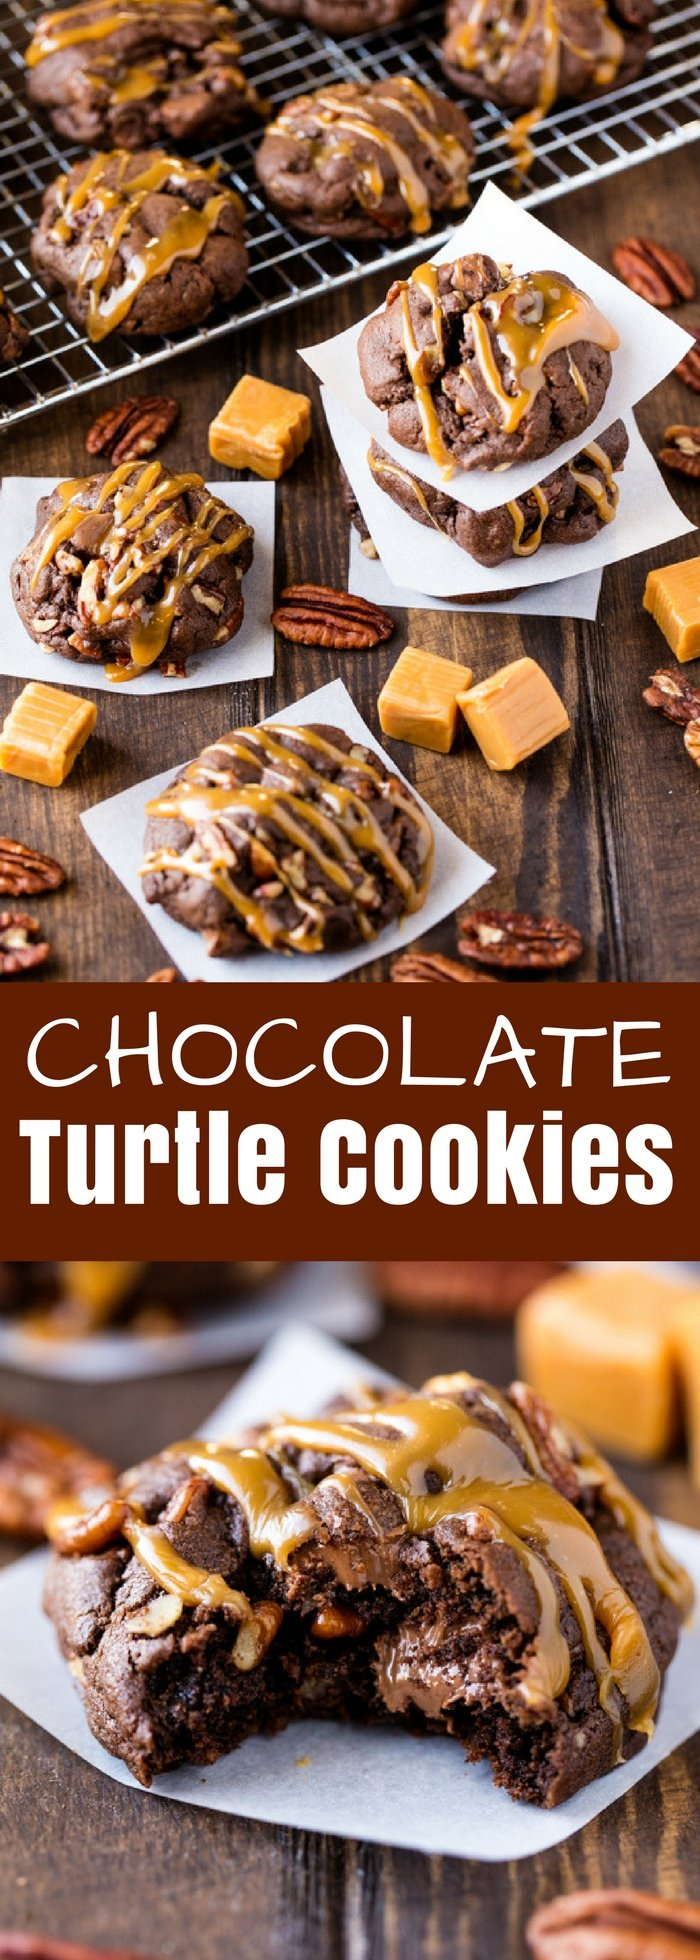 These Chocolate Turtle Cookies are ultra decadent, soft, and delicious. Any chocolate lover will go crazy for this delicious cookie recipe!